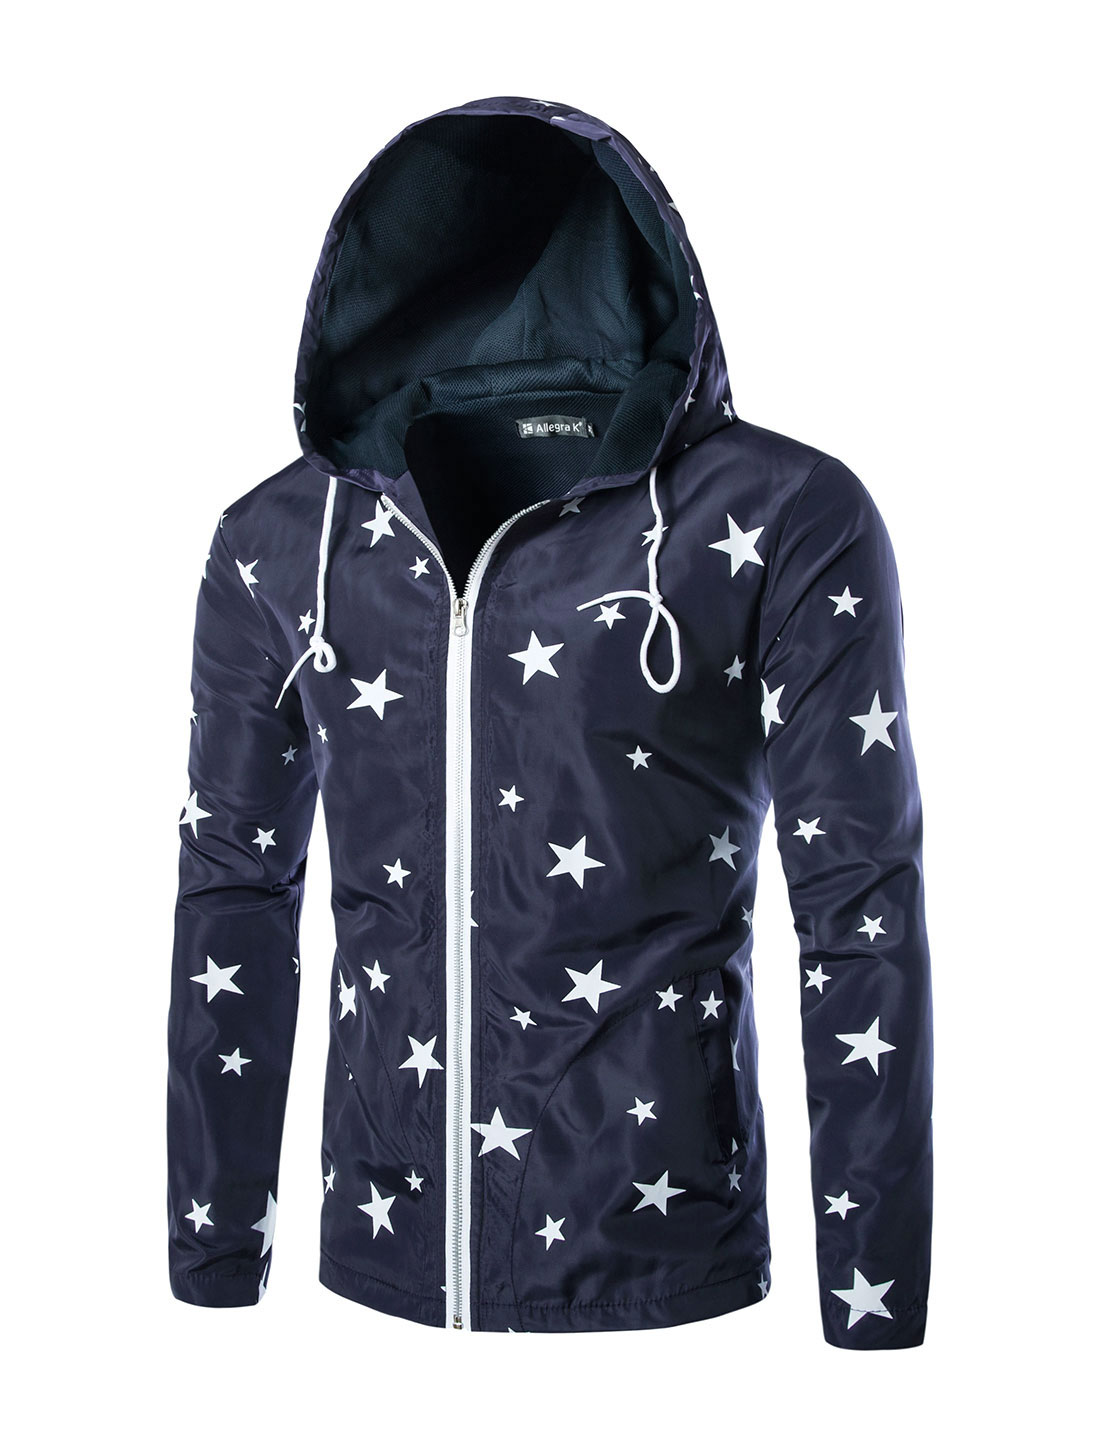 Men Long Sleeve Stars Slim Fit Hoodies Jackets Navy Blue L